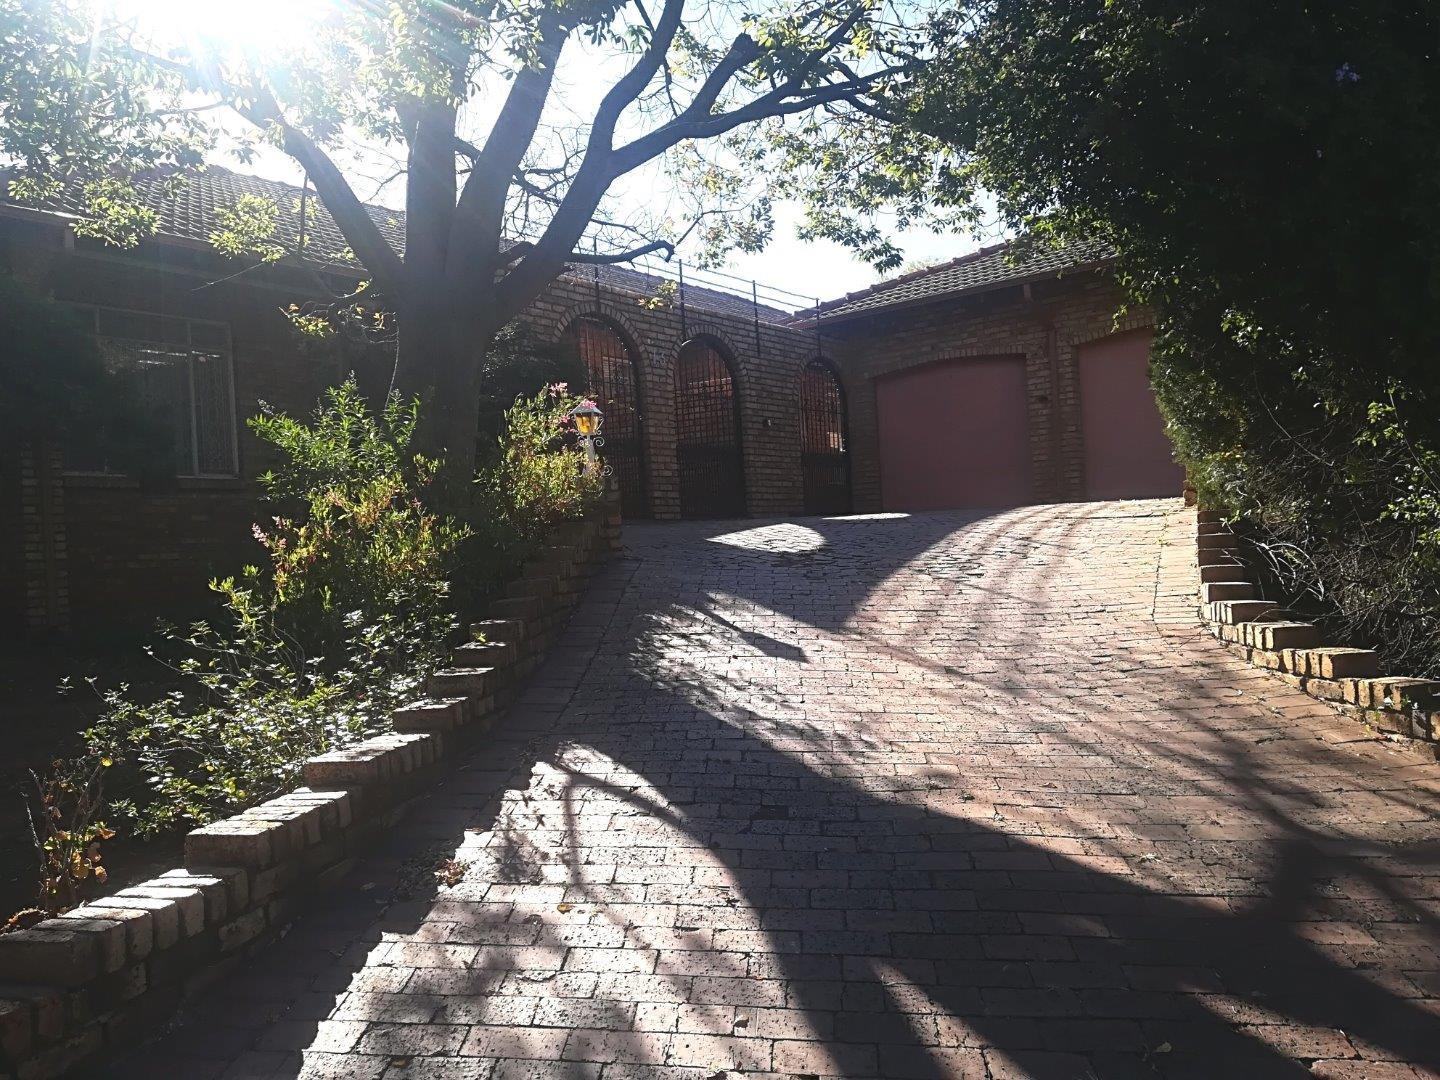 3 Bedroom House for Sale in Kloofendal, Roodepoort - Gauteng